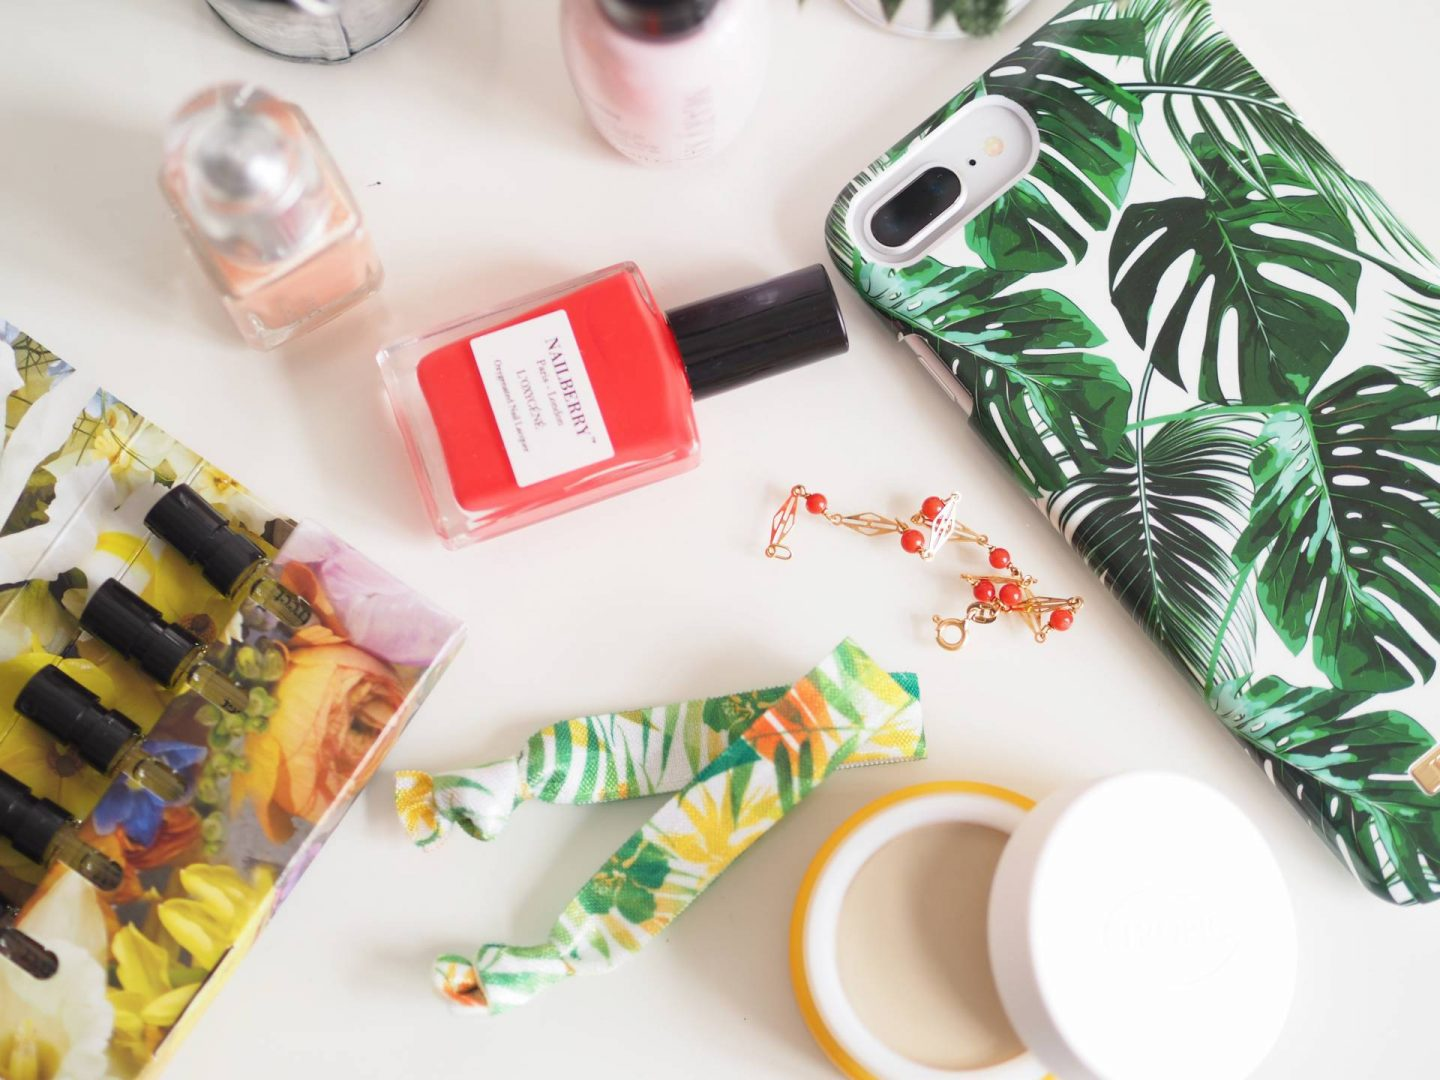 SUMMER HOLIDAY BEAUTY MUST HAVES